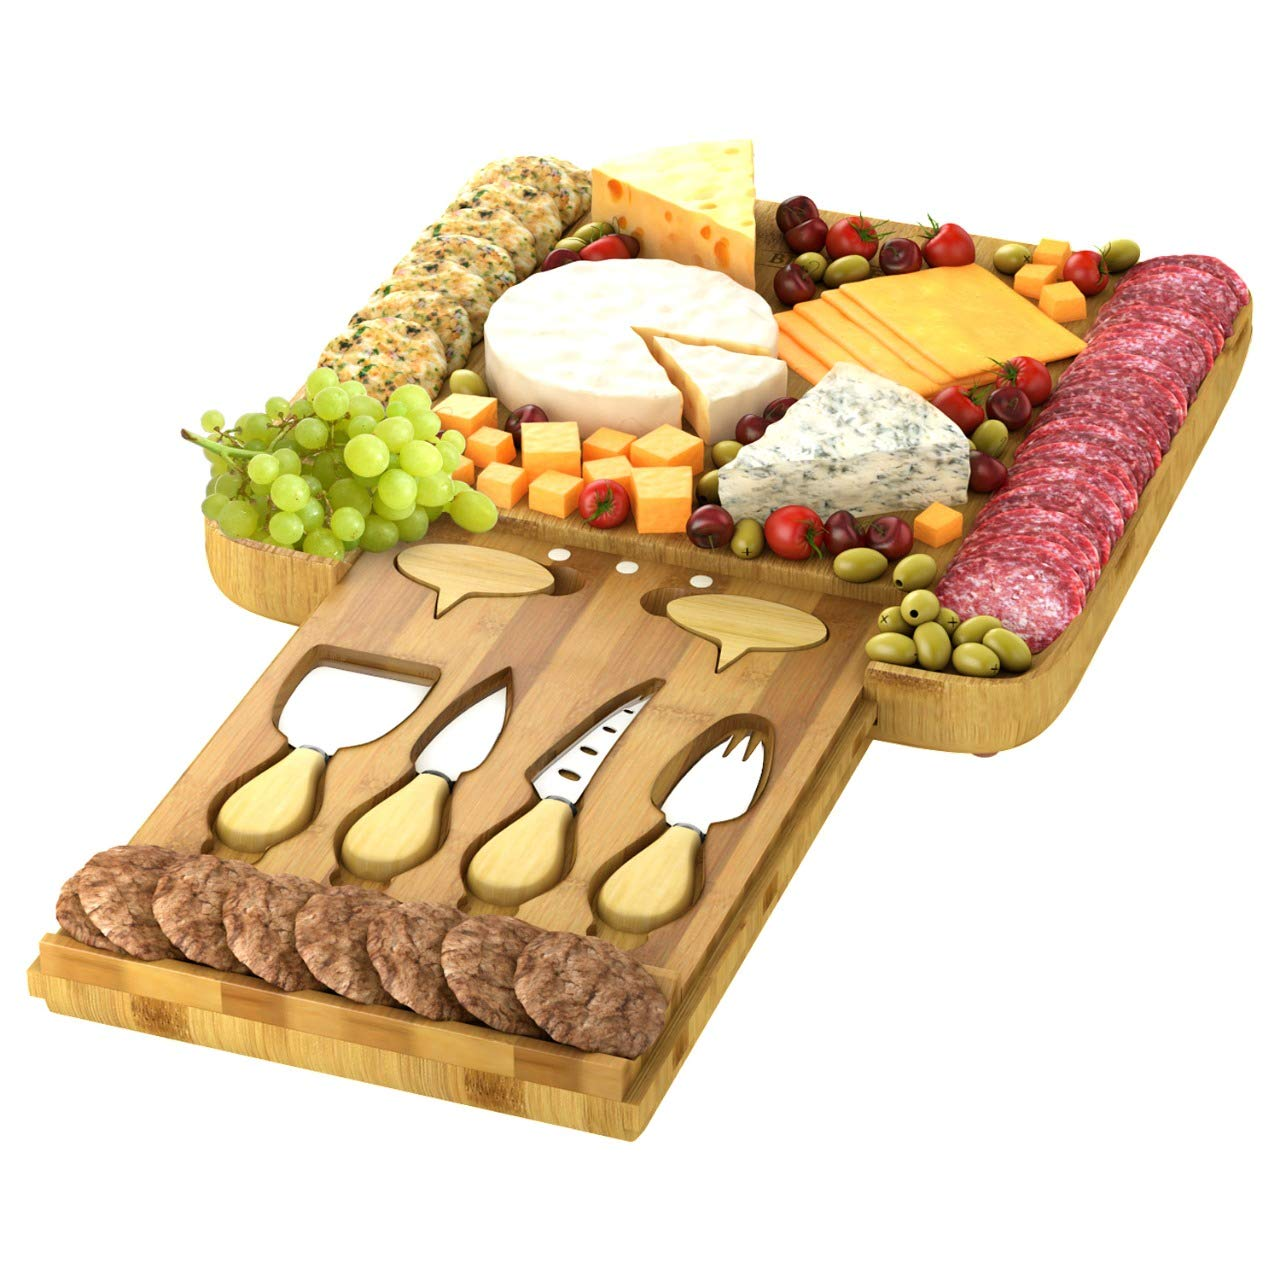 Cheese Board Set - Large Charcuterie Bamboo Serving Tray Platter with 4 Knives & Cheese Markers - Perfect Gift Idea